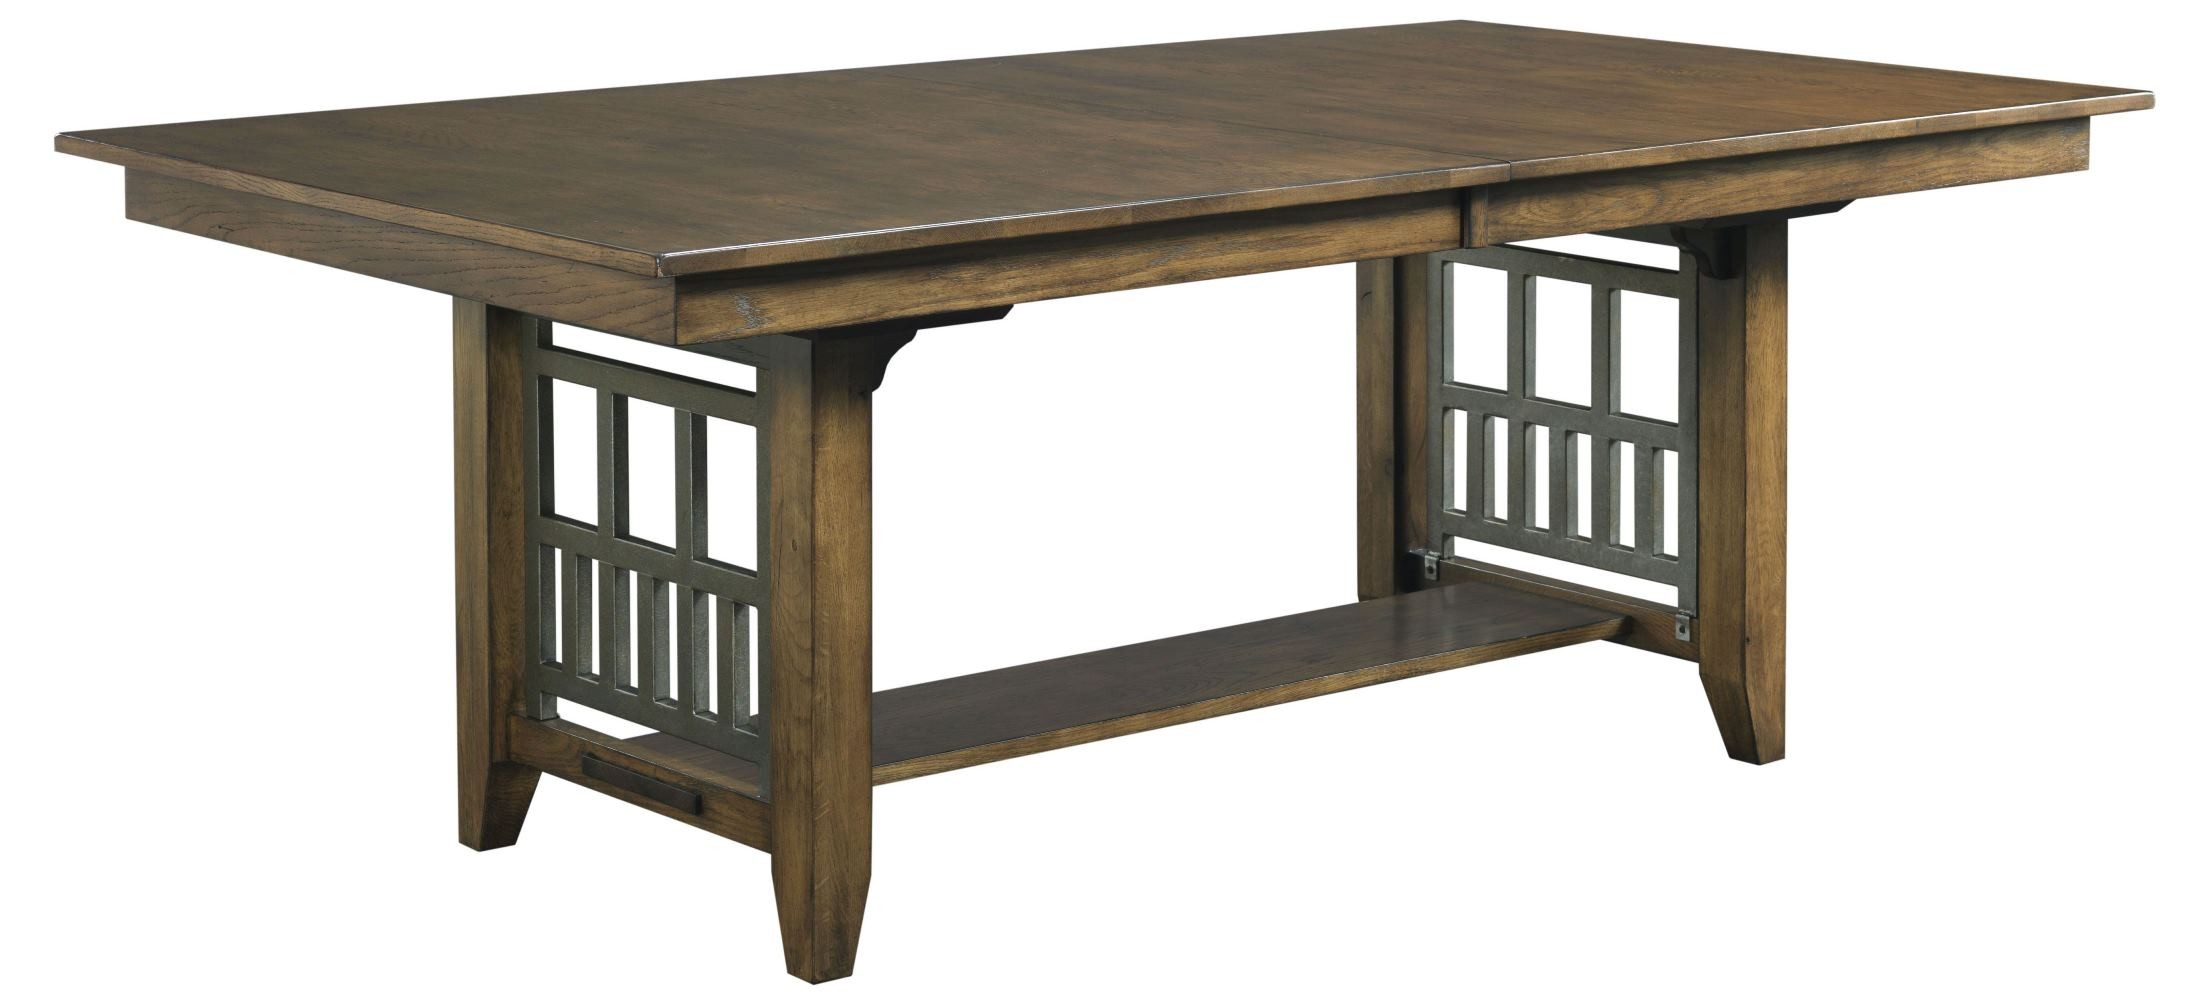 Bedford Park Extendable Trestle Dining Table from Kincaid  : 74 054 from colemanfurniture.com size 2200 x 1007 jpeg 188kB